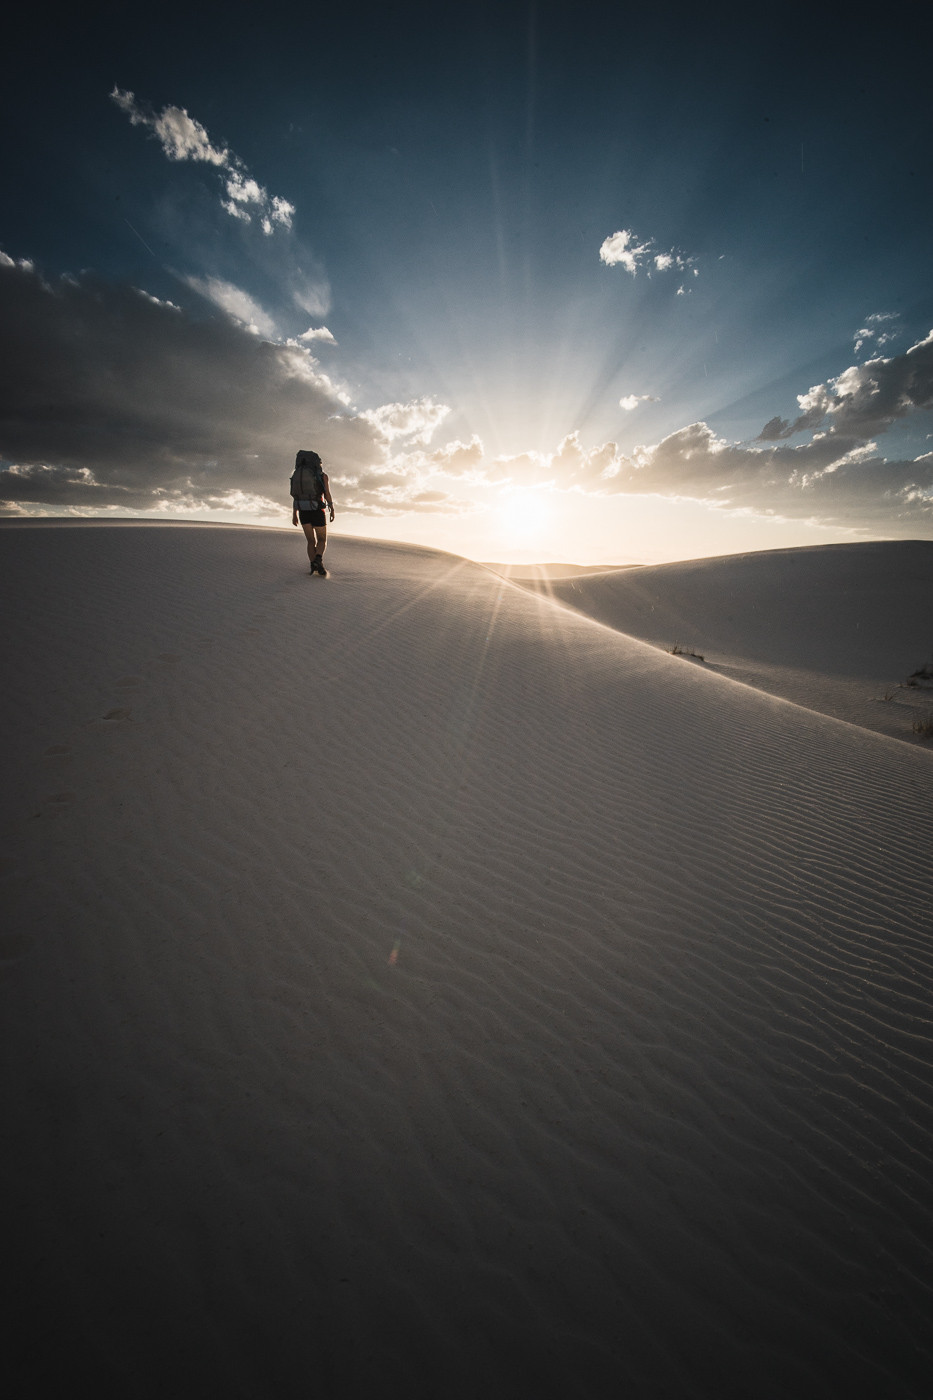 White Sands National Monument, NM. Voigtlander Heliar 15mm/4.5, a7II, f/11, 1/320th, ISO 200, Full Resolution (12.4MB)